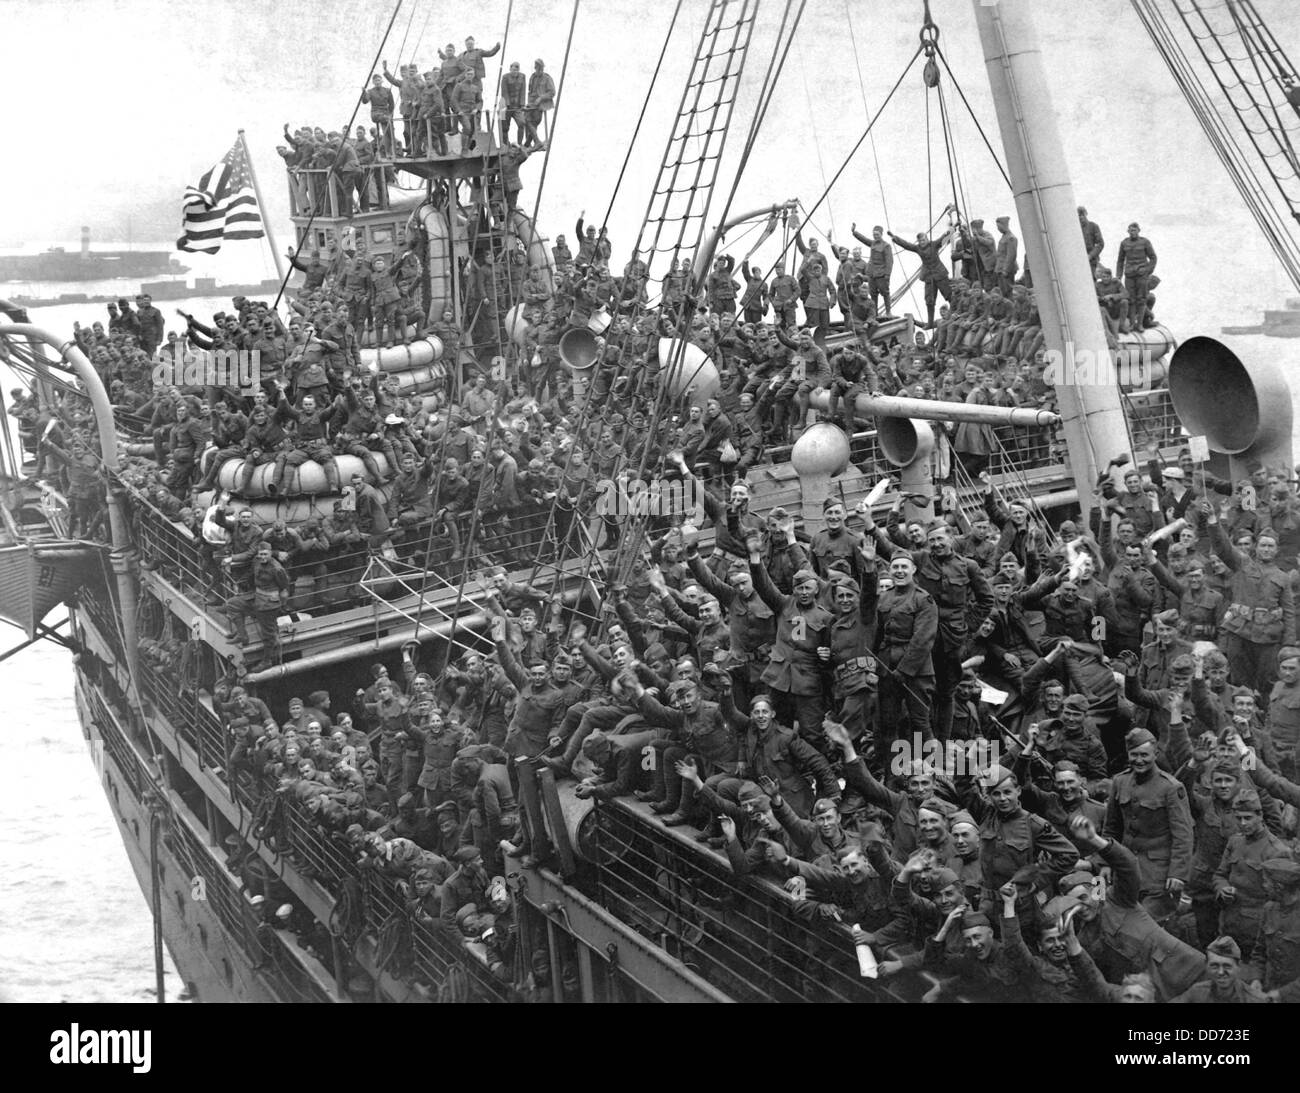 Troop Ship Stock Photos Troop Ship Stock Images Alamy